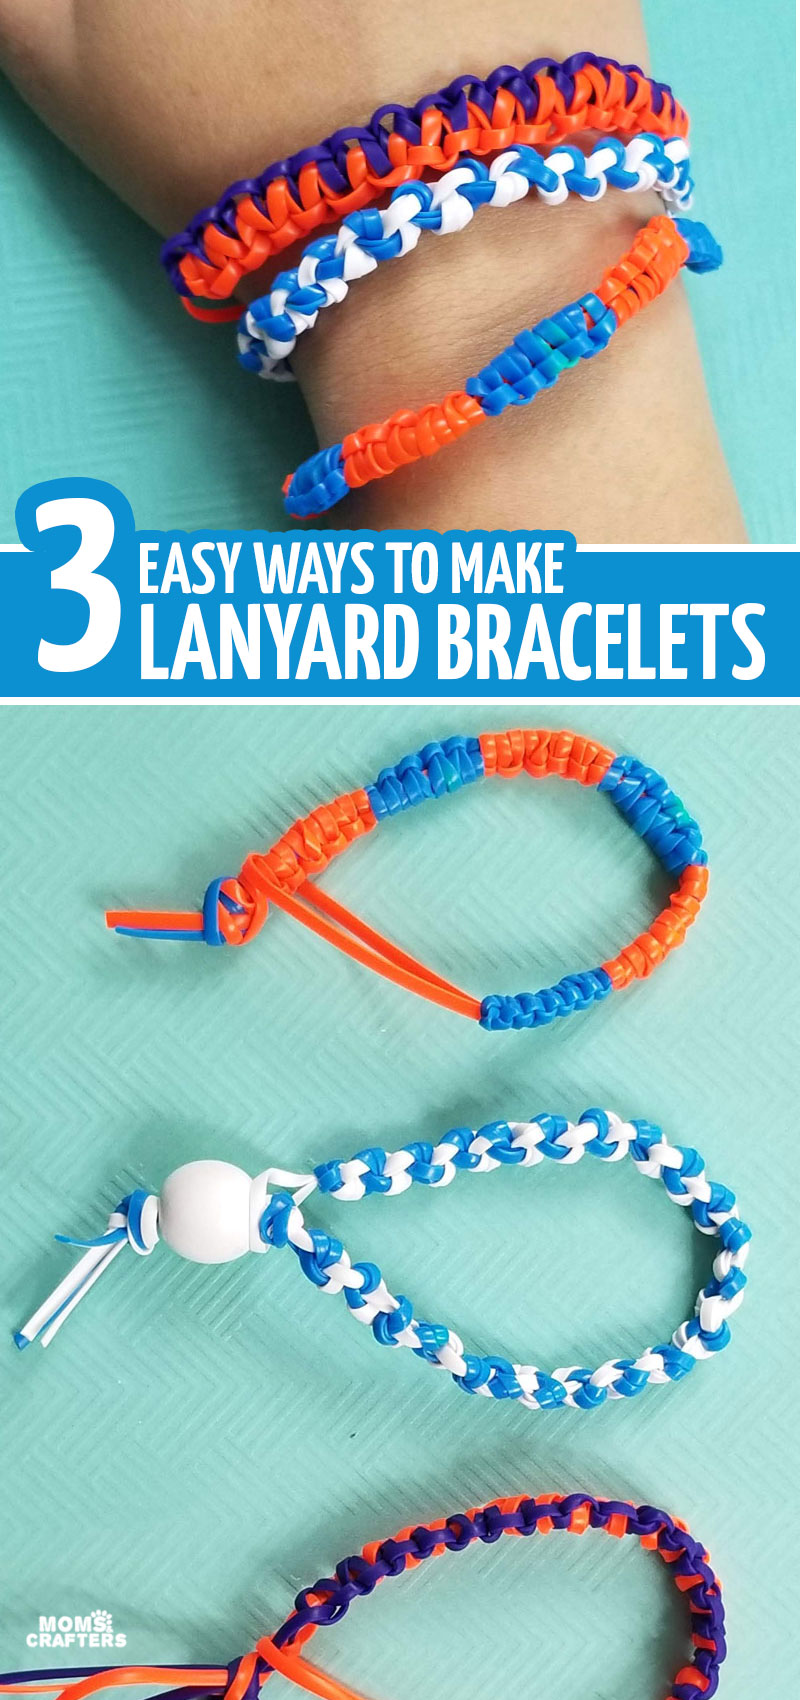 Want to learn how to make a gimp bracelet? These three lanyard knots are flexible and perfect for making bracelets! This fun boondoggle idea is perfect for summer camps and a great craft idea for tween boys and girls - and even kids!